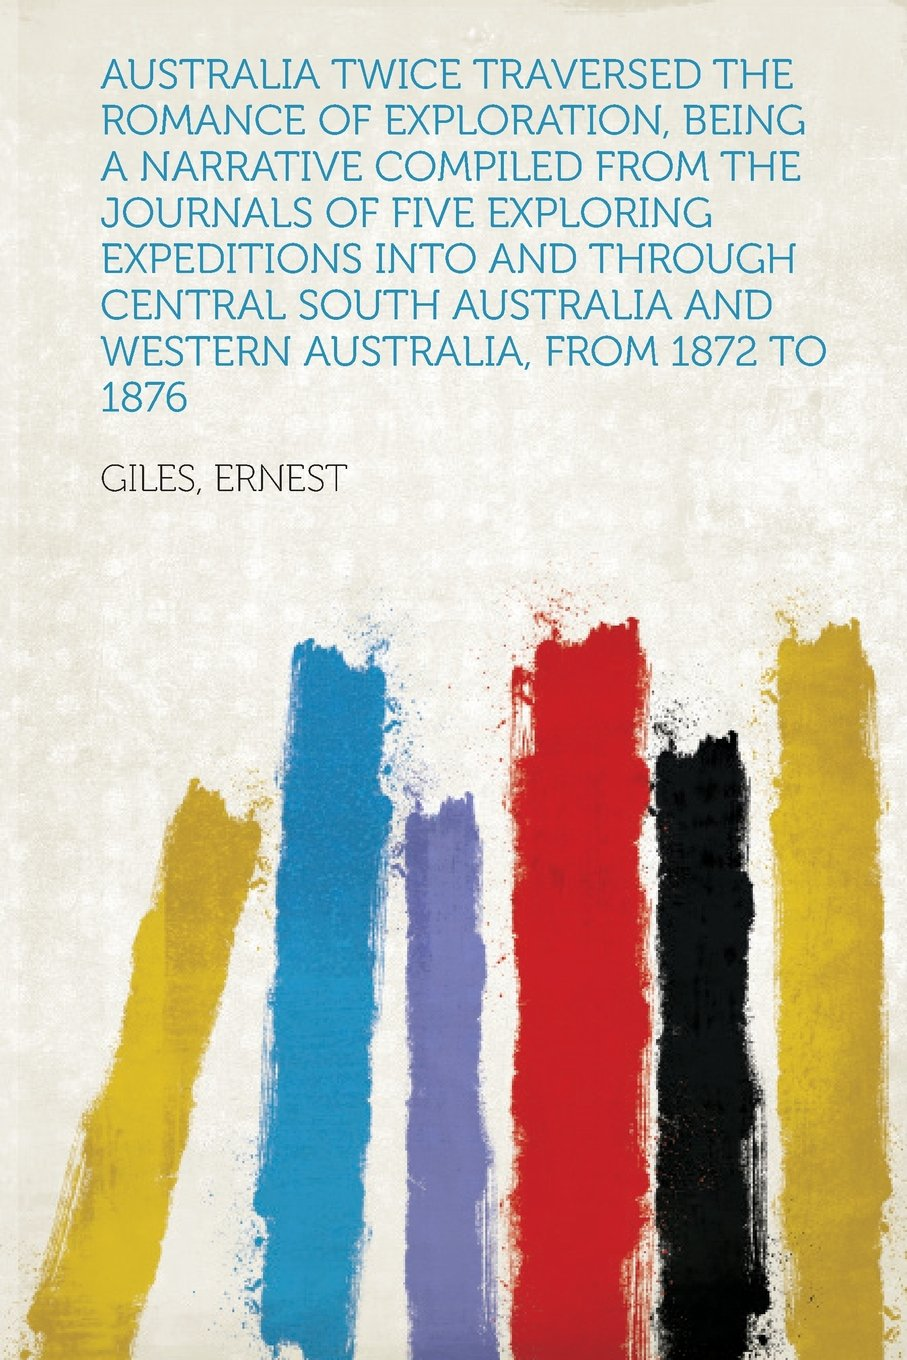 Australia Twice Traversed The Romance of Exploration, Being a Narrative Compiled from the Journals of Five Exploring Expeditions into and Through ... and Western Australia, from 1872 to 1876 ebook